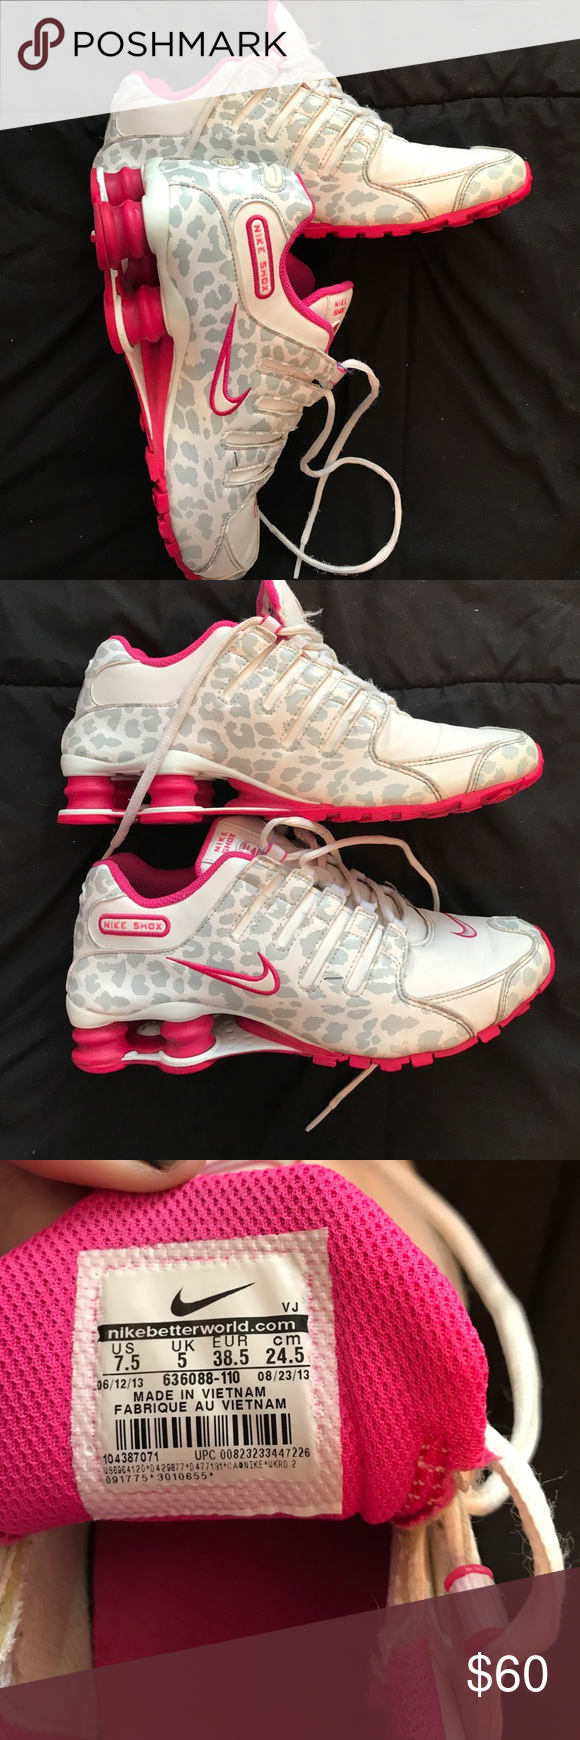 00839ed0611d62 ... Pink Leopard Nike Shox Very Rare